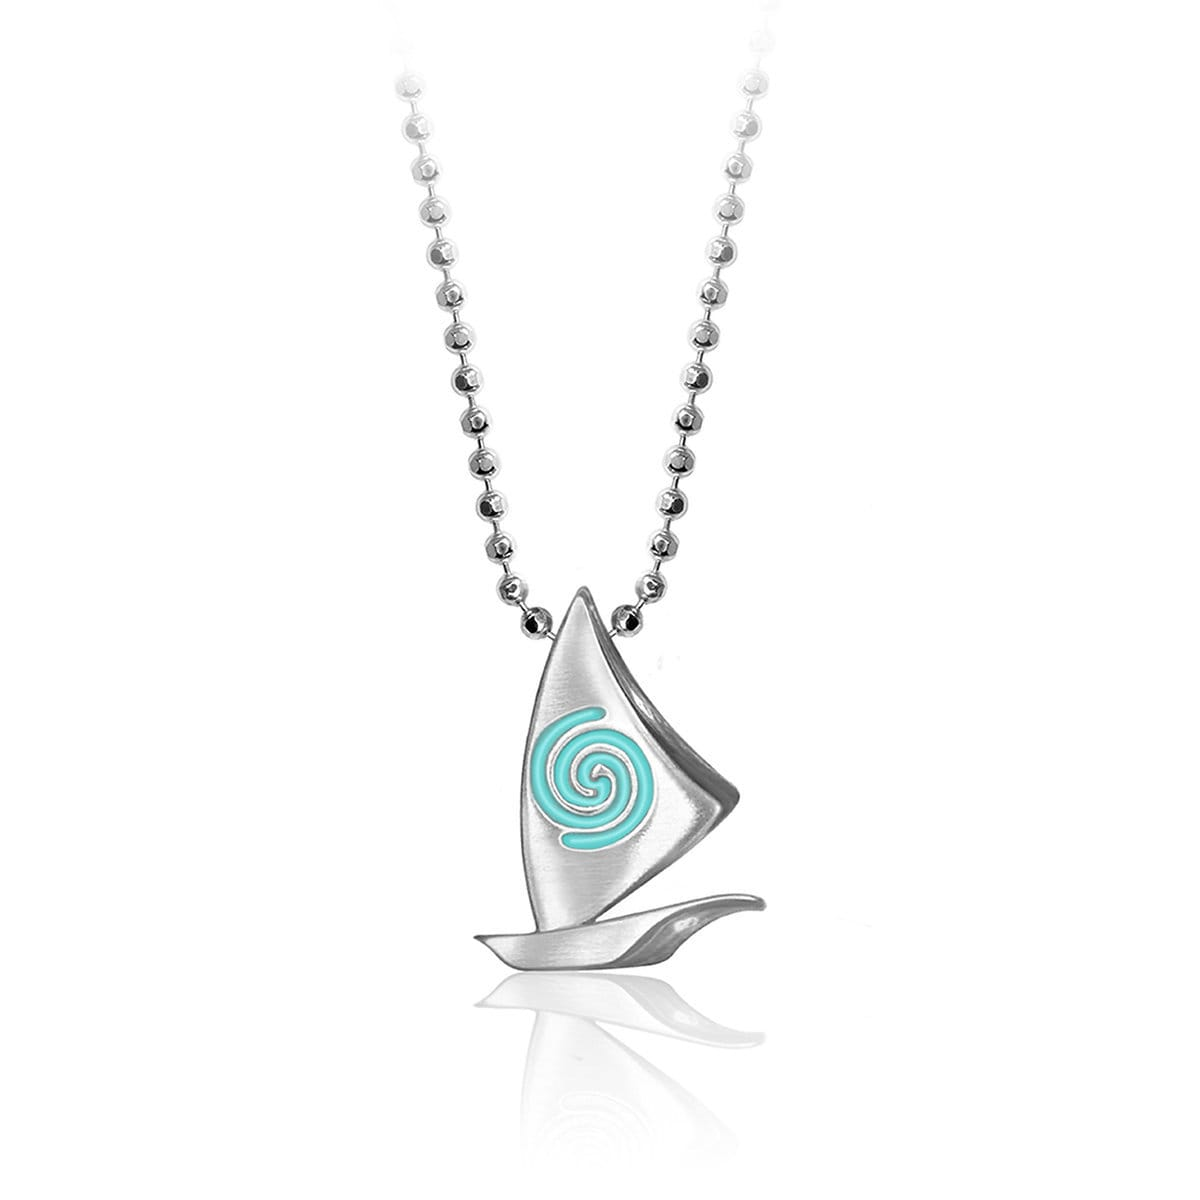 website sterling necklace shipping image free worldwide product silver hilaryandjune triangle of trianglenecklace